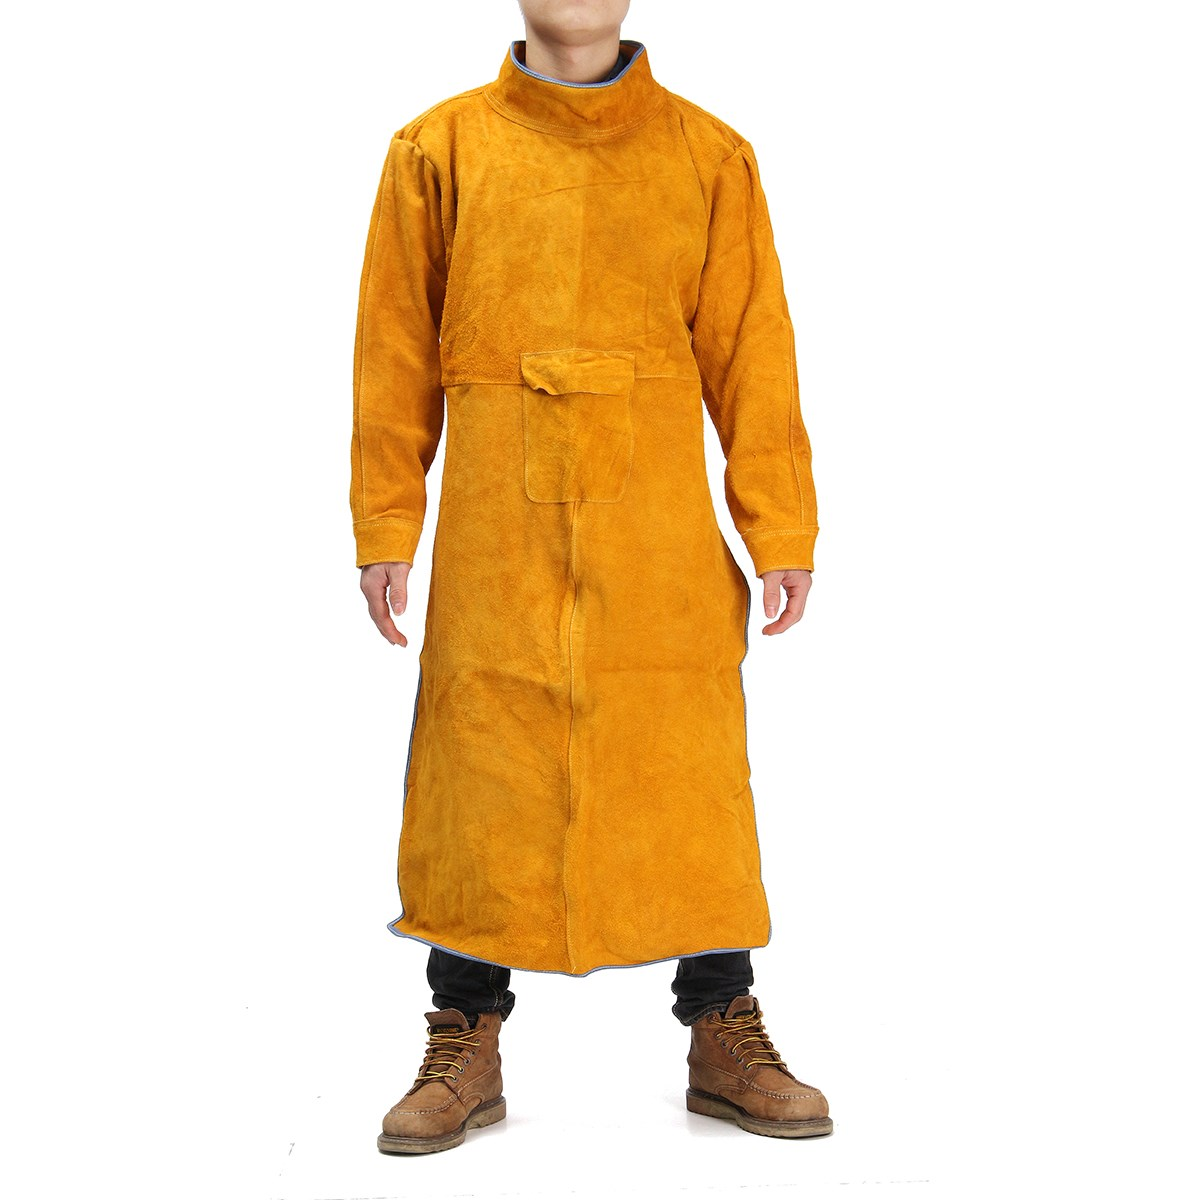 NEW Durable Leather Welding Long Coat Apron Protective Clothing Apparel Suit Welder Workplace Safety Clothing leather welding long coat apron protective clothing apparel suit welder workplace safety clothing